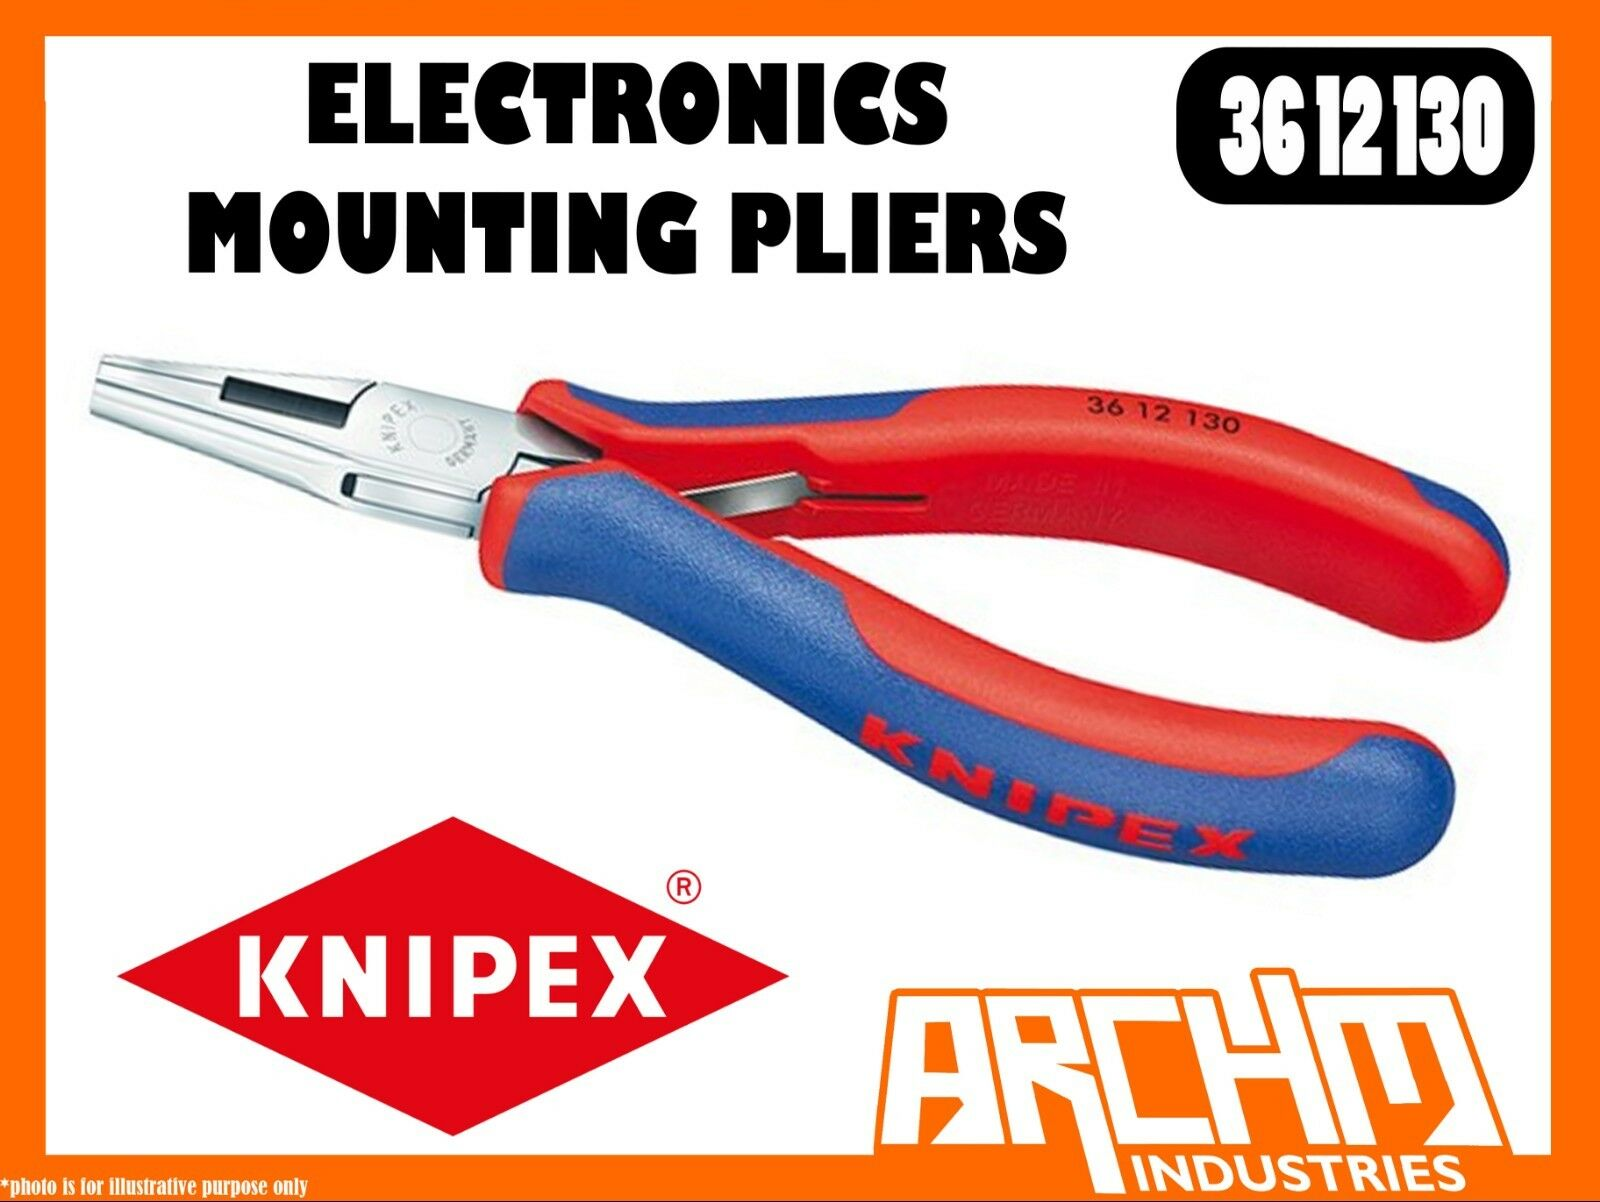 KNIPEX 3612130 - ELECTRONICS MOUNTING PLIERS - 130MM - MULTI-COMPONENT GRIPS